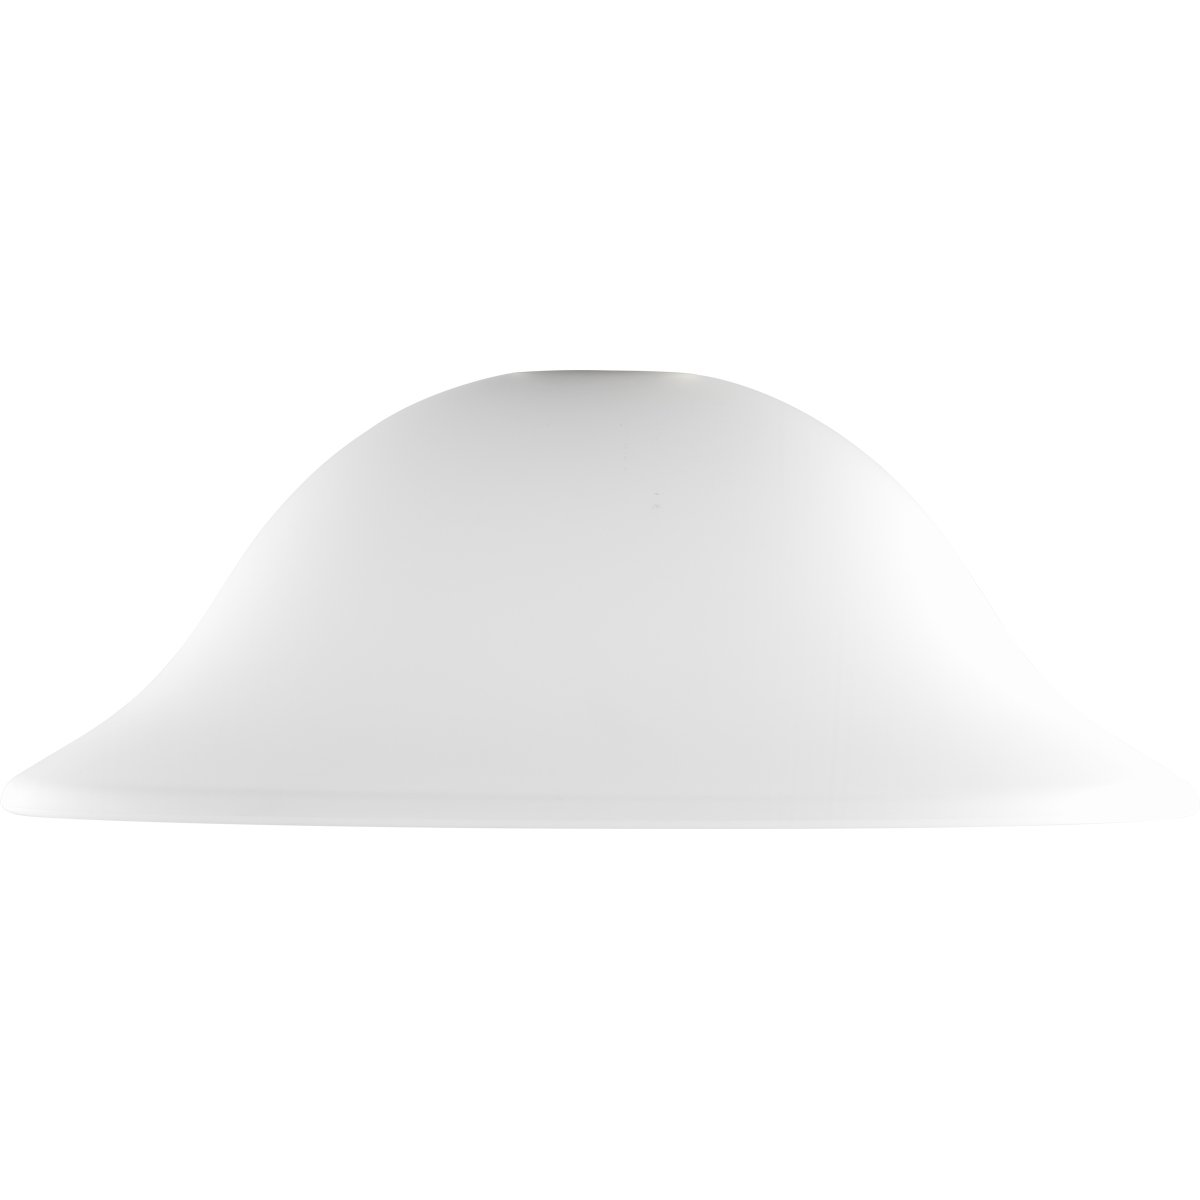 HomeStyle HS99001-01 Glass replacement shade